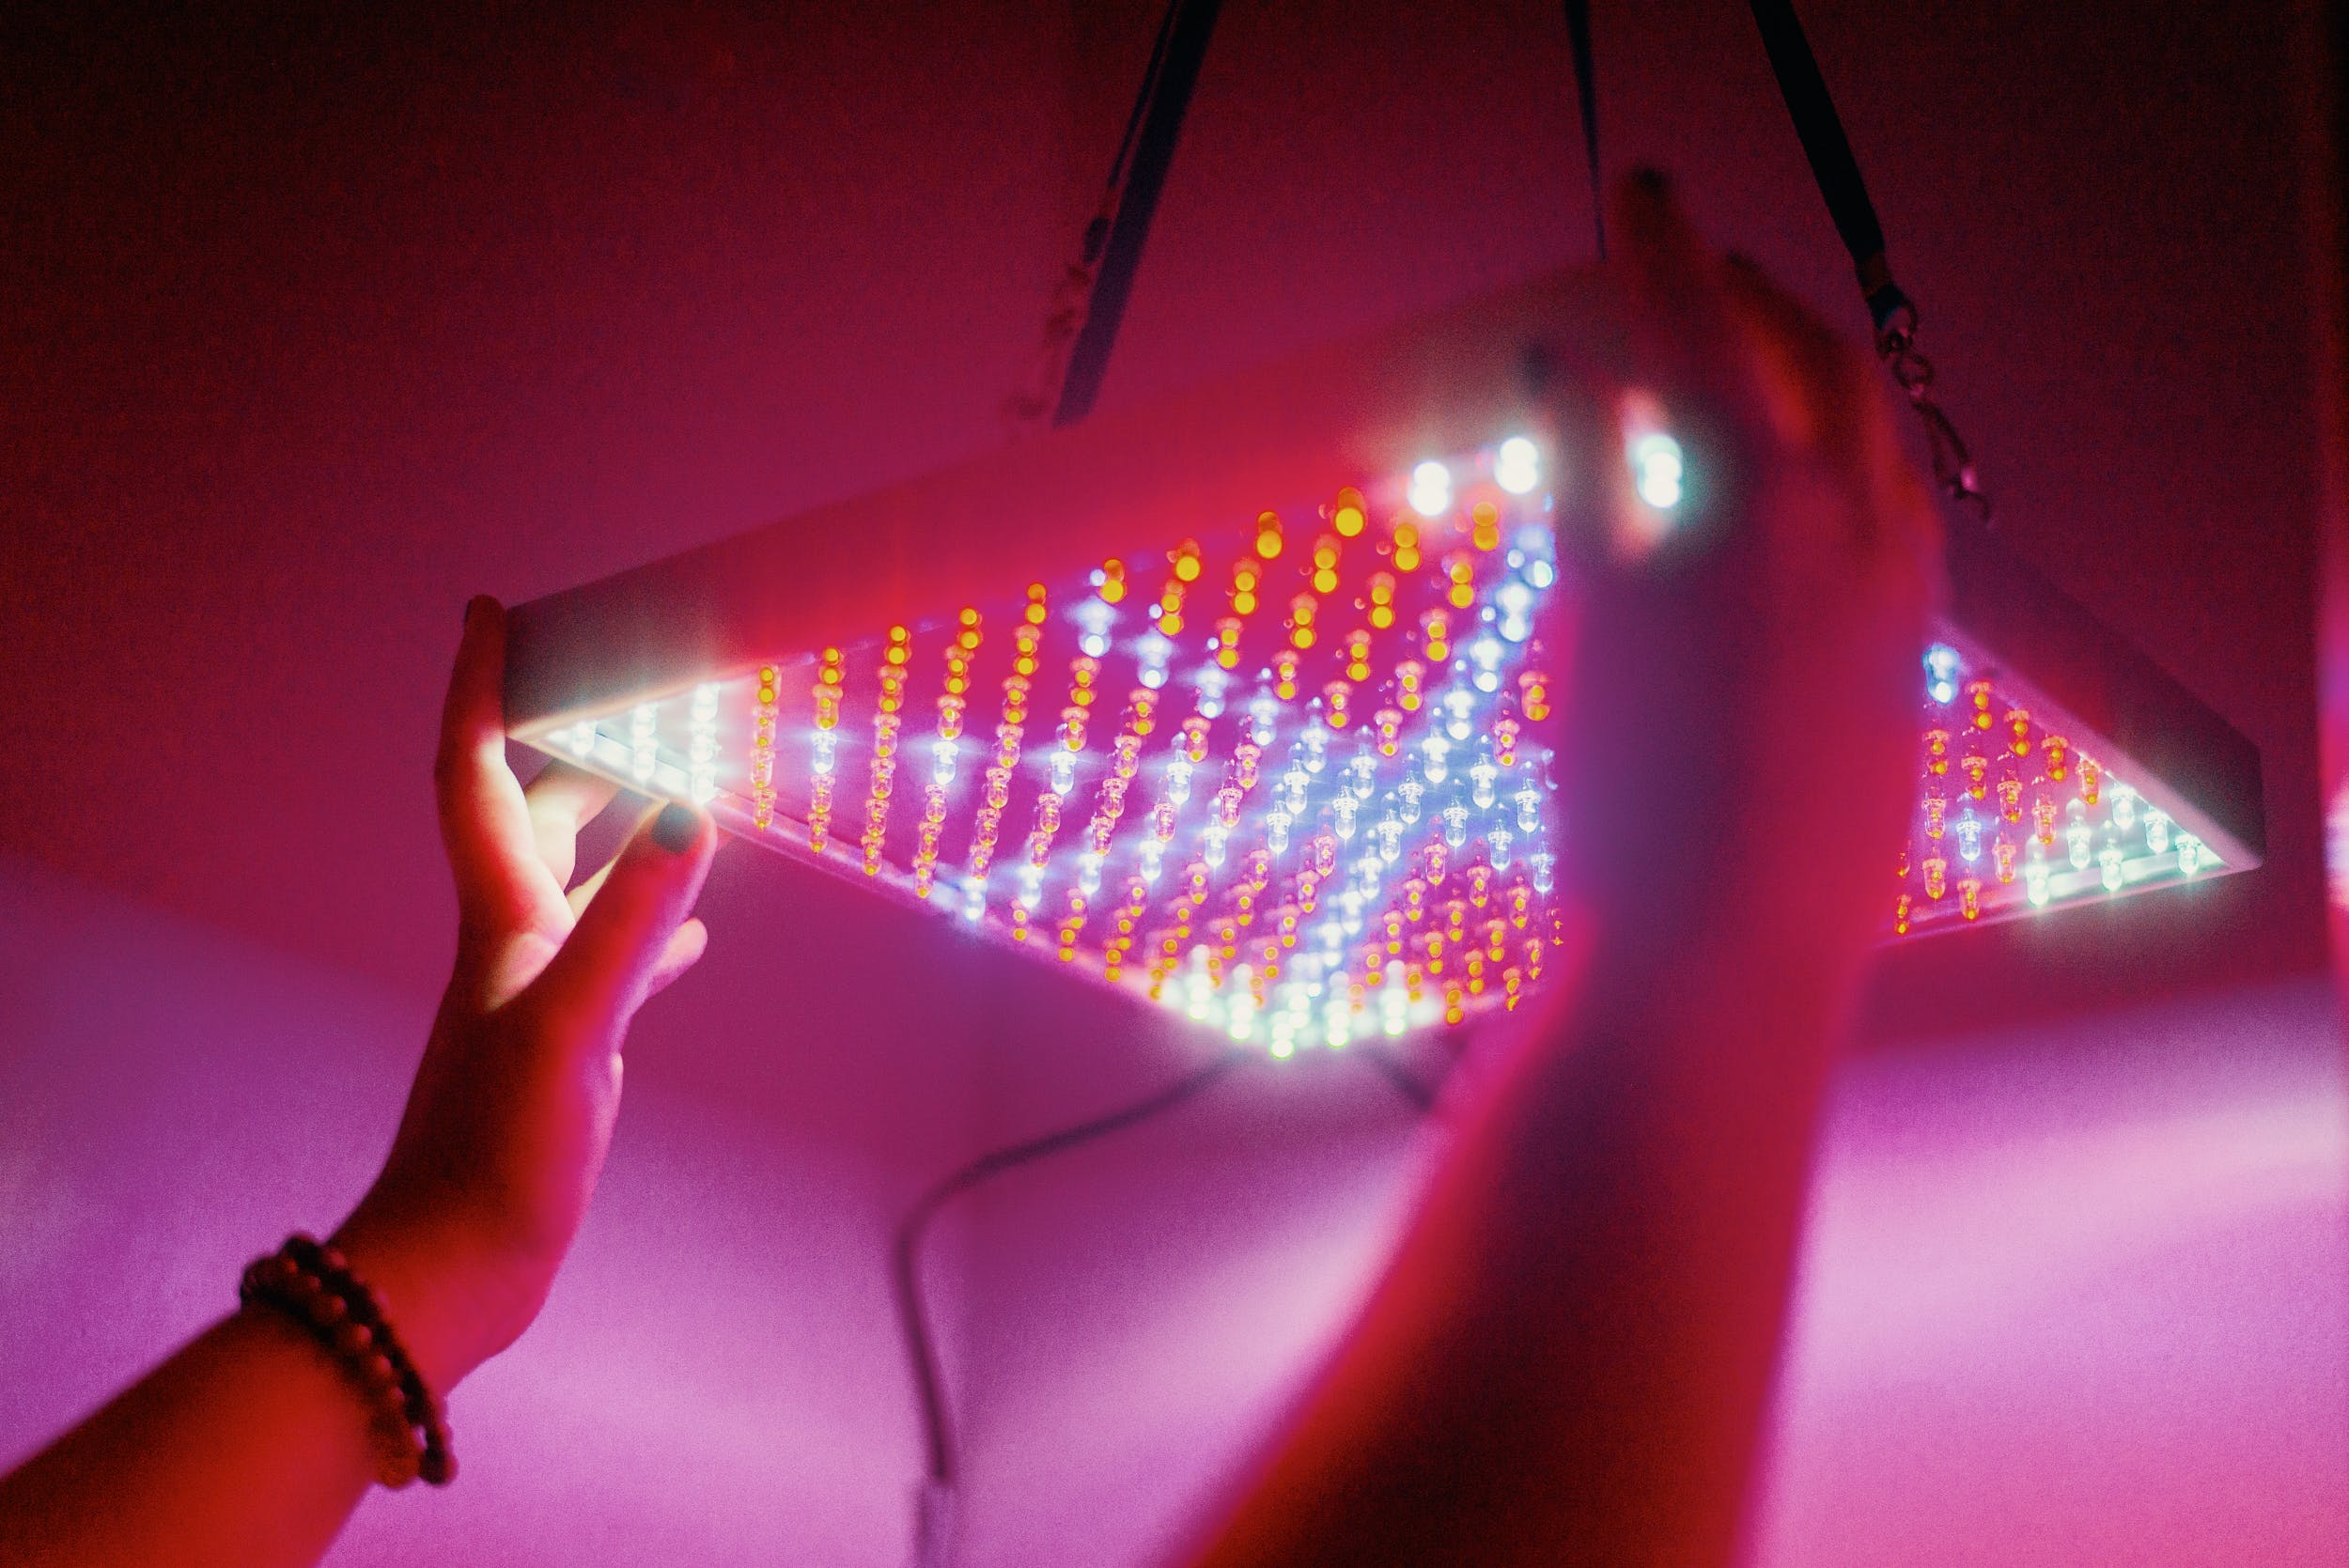 Best LED Grow Lights 38 These Are The Best LED Grow Lights For Big Yields and Healthy Plants